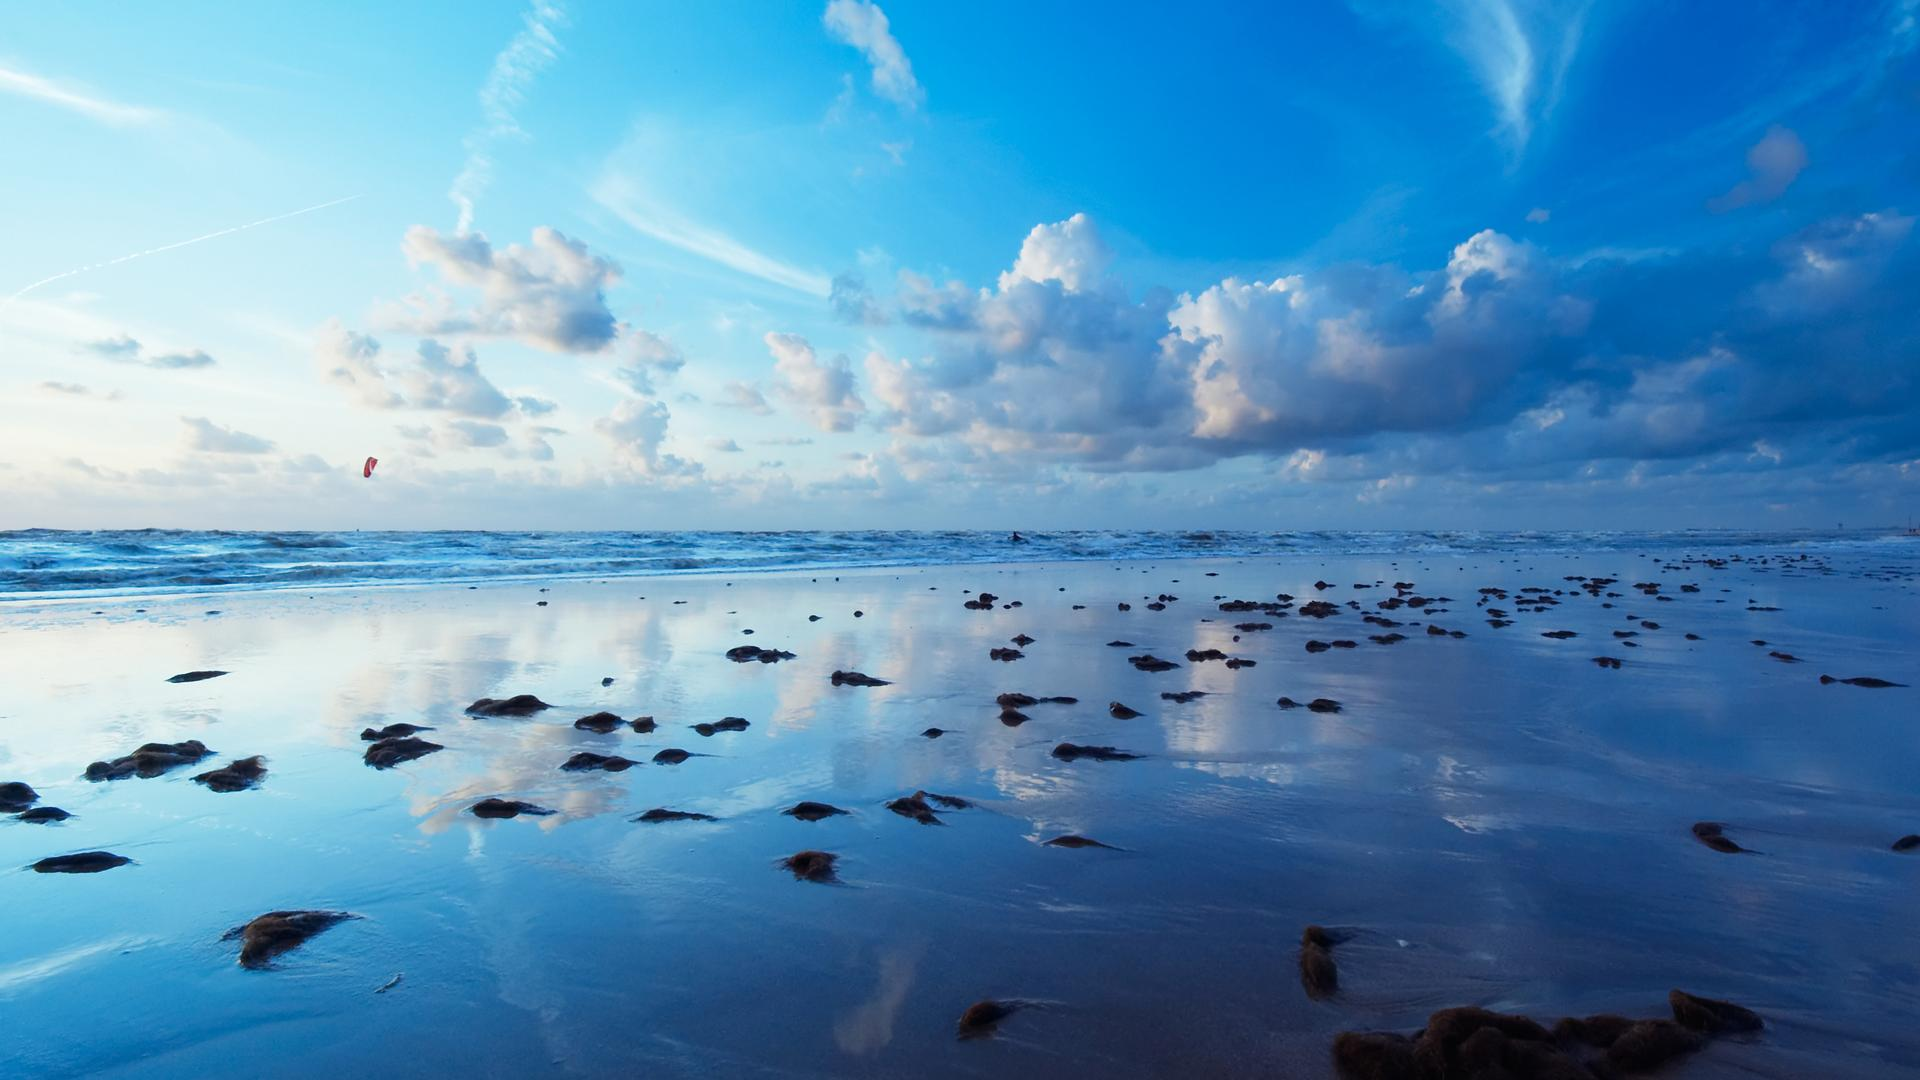 live ocean wallpaper android which is under the ocean wallpapers 1920x1080